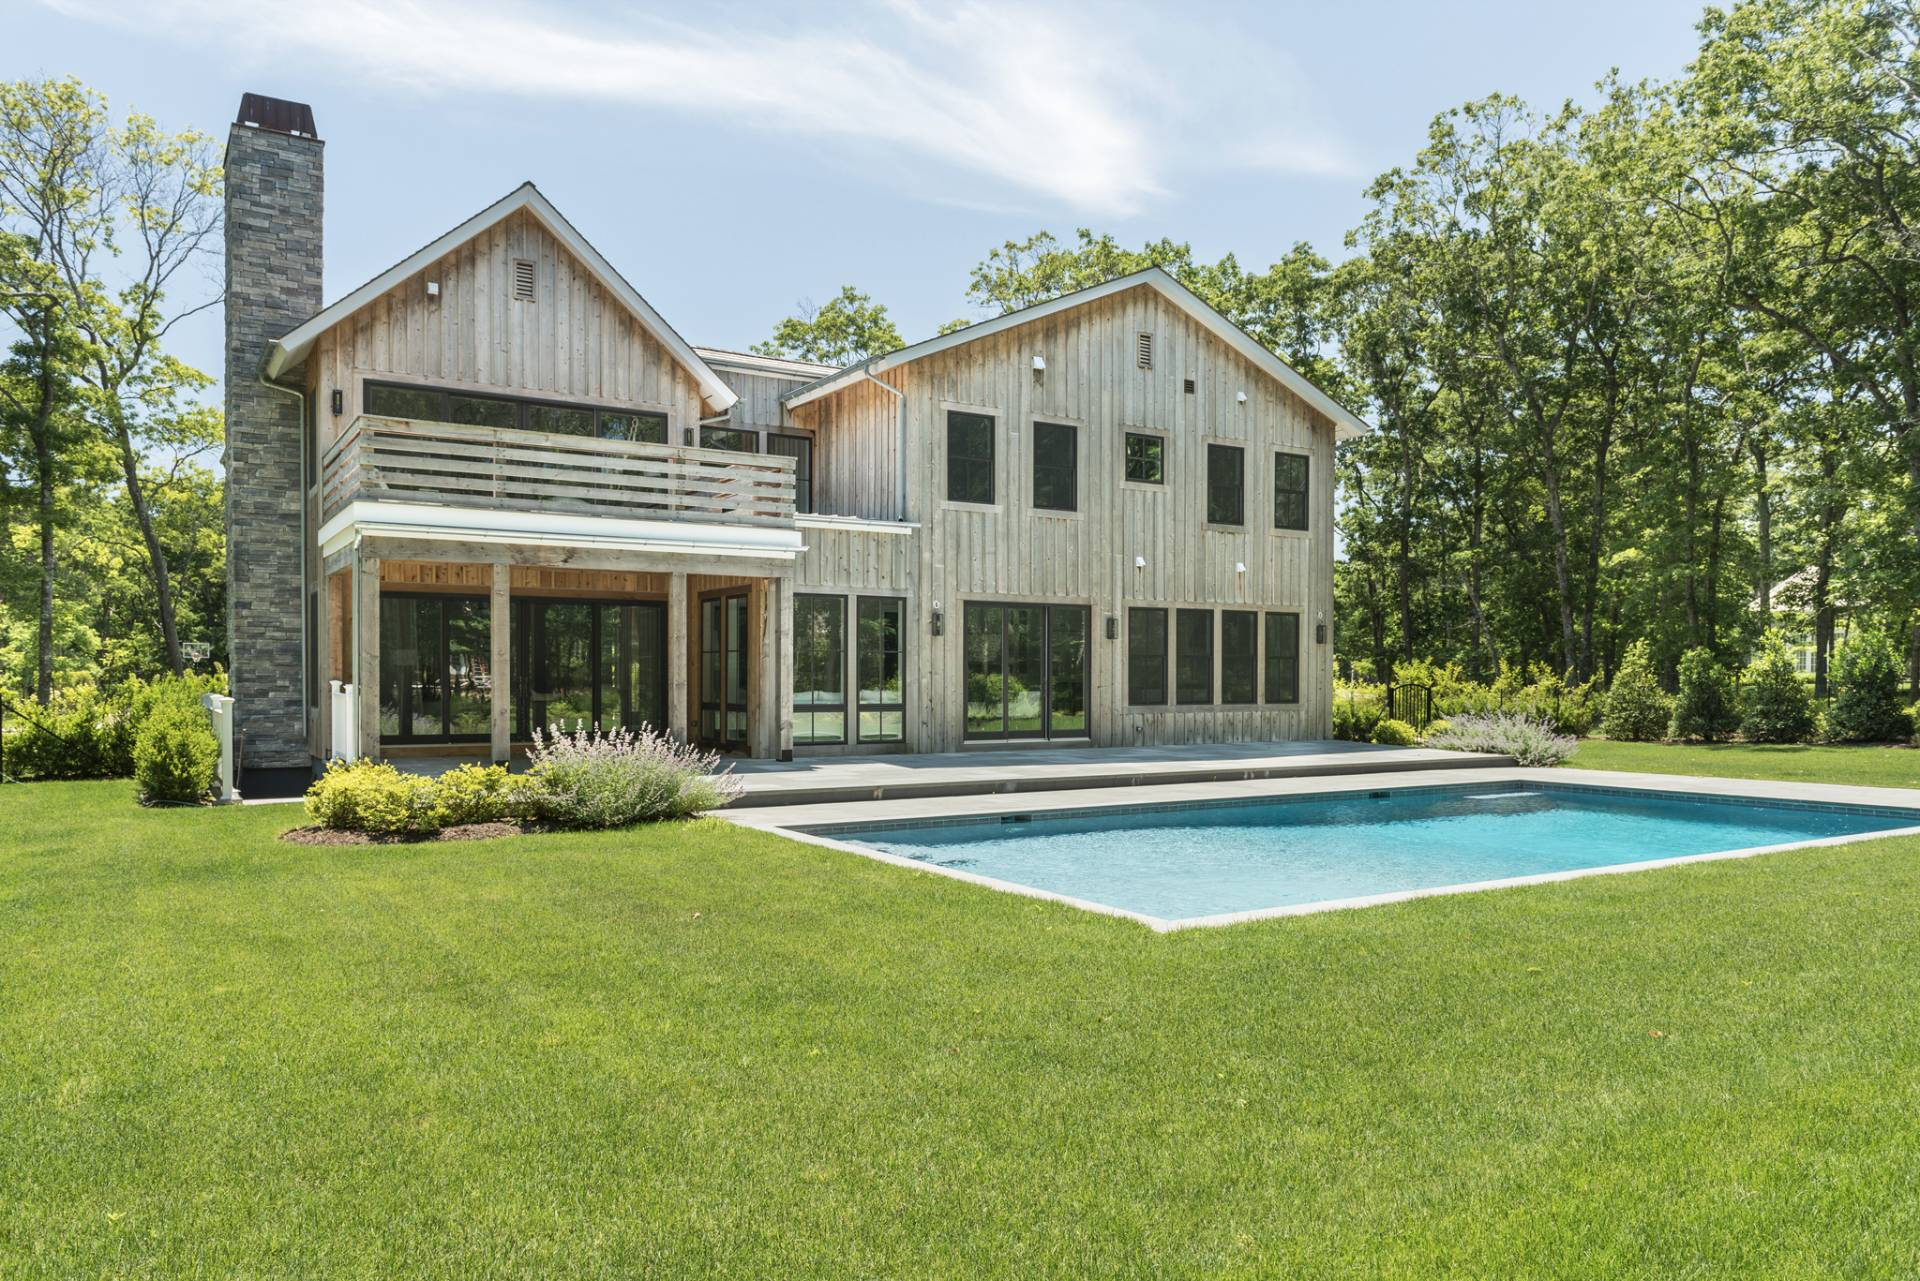 Single Family Home for Sale at The Mecox Barn: New Construction At Barn & Vine, Bridgehampton 64 Birchwood Lane, Bridgehampton, New York